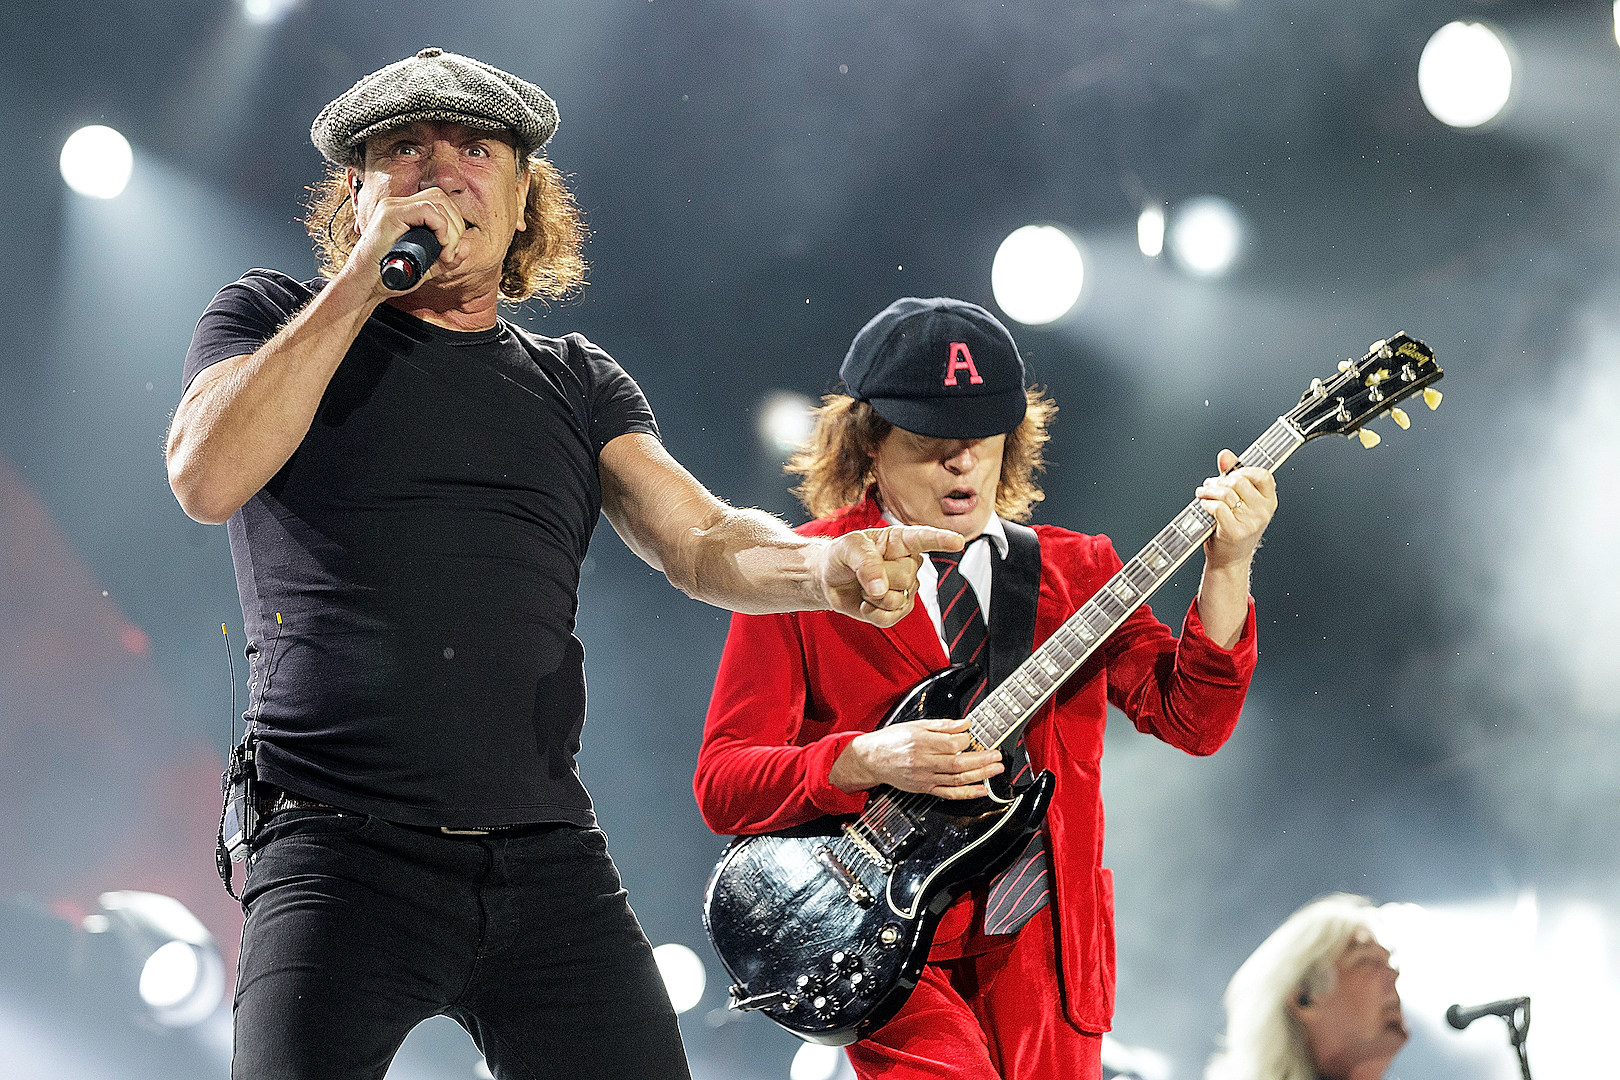 Report: AC/DC to Tour This Fall Following Release of New Album